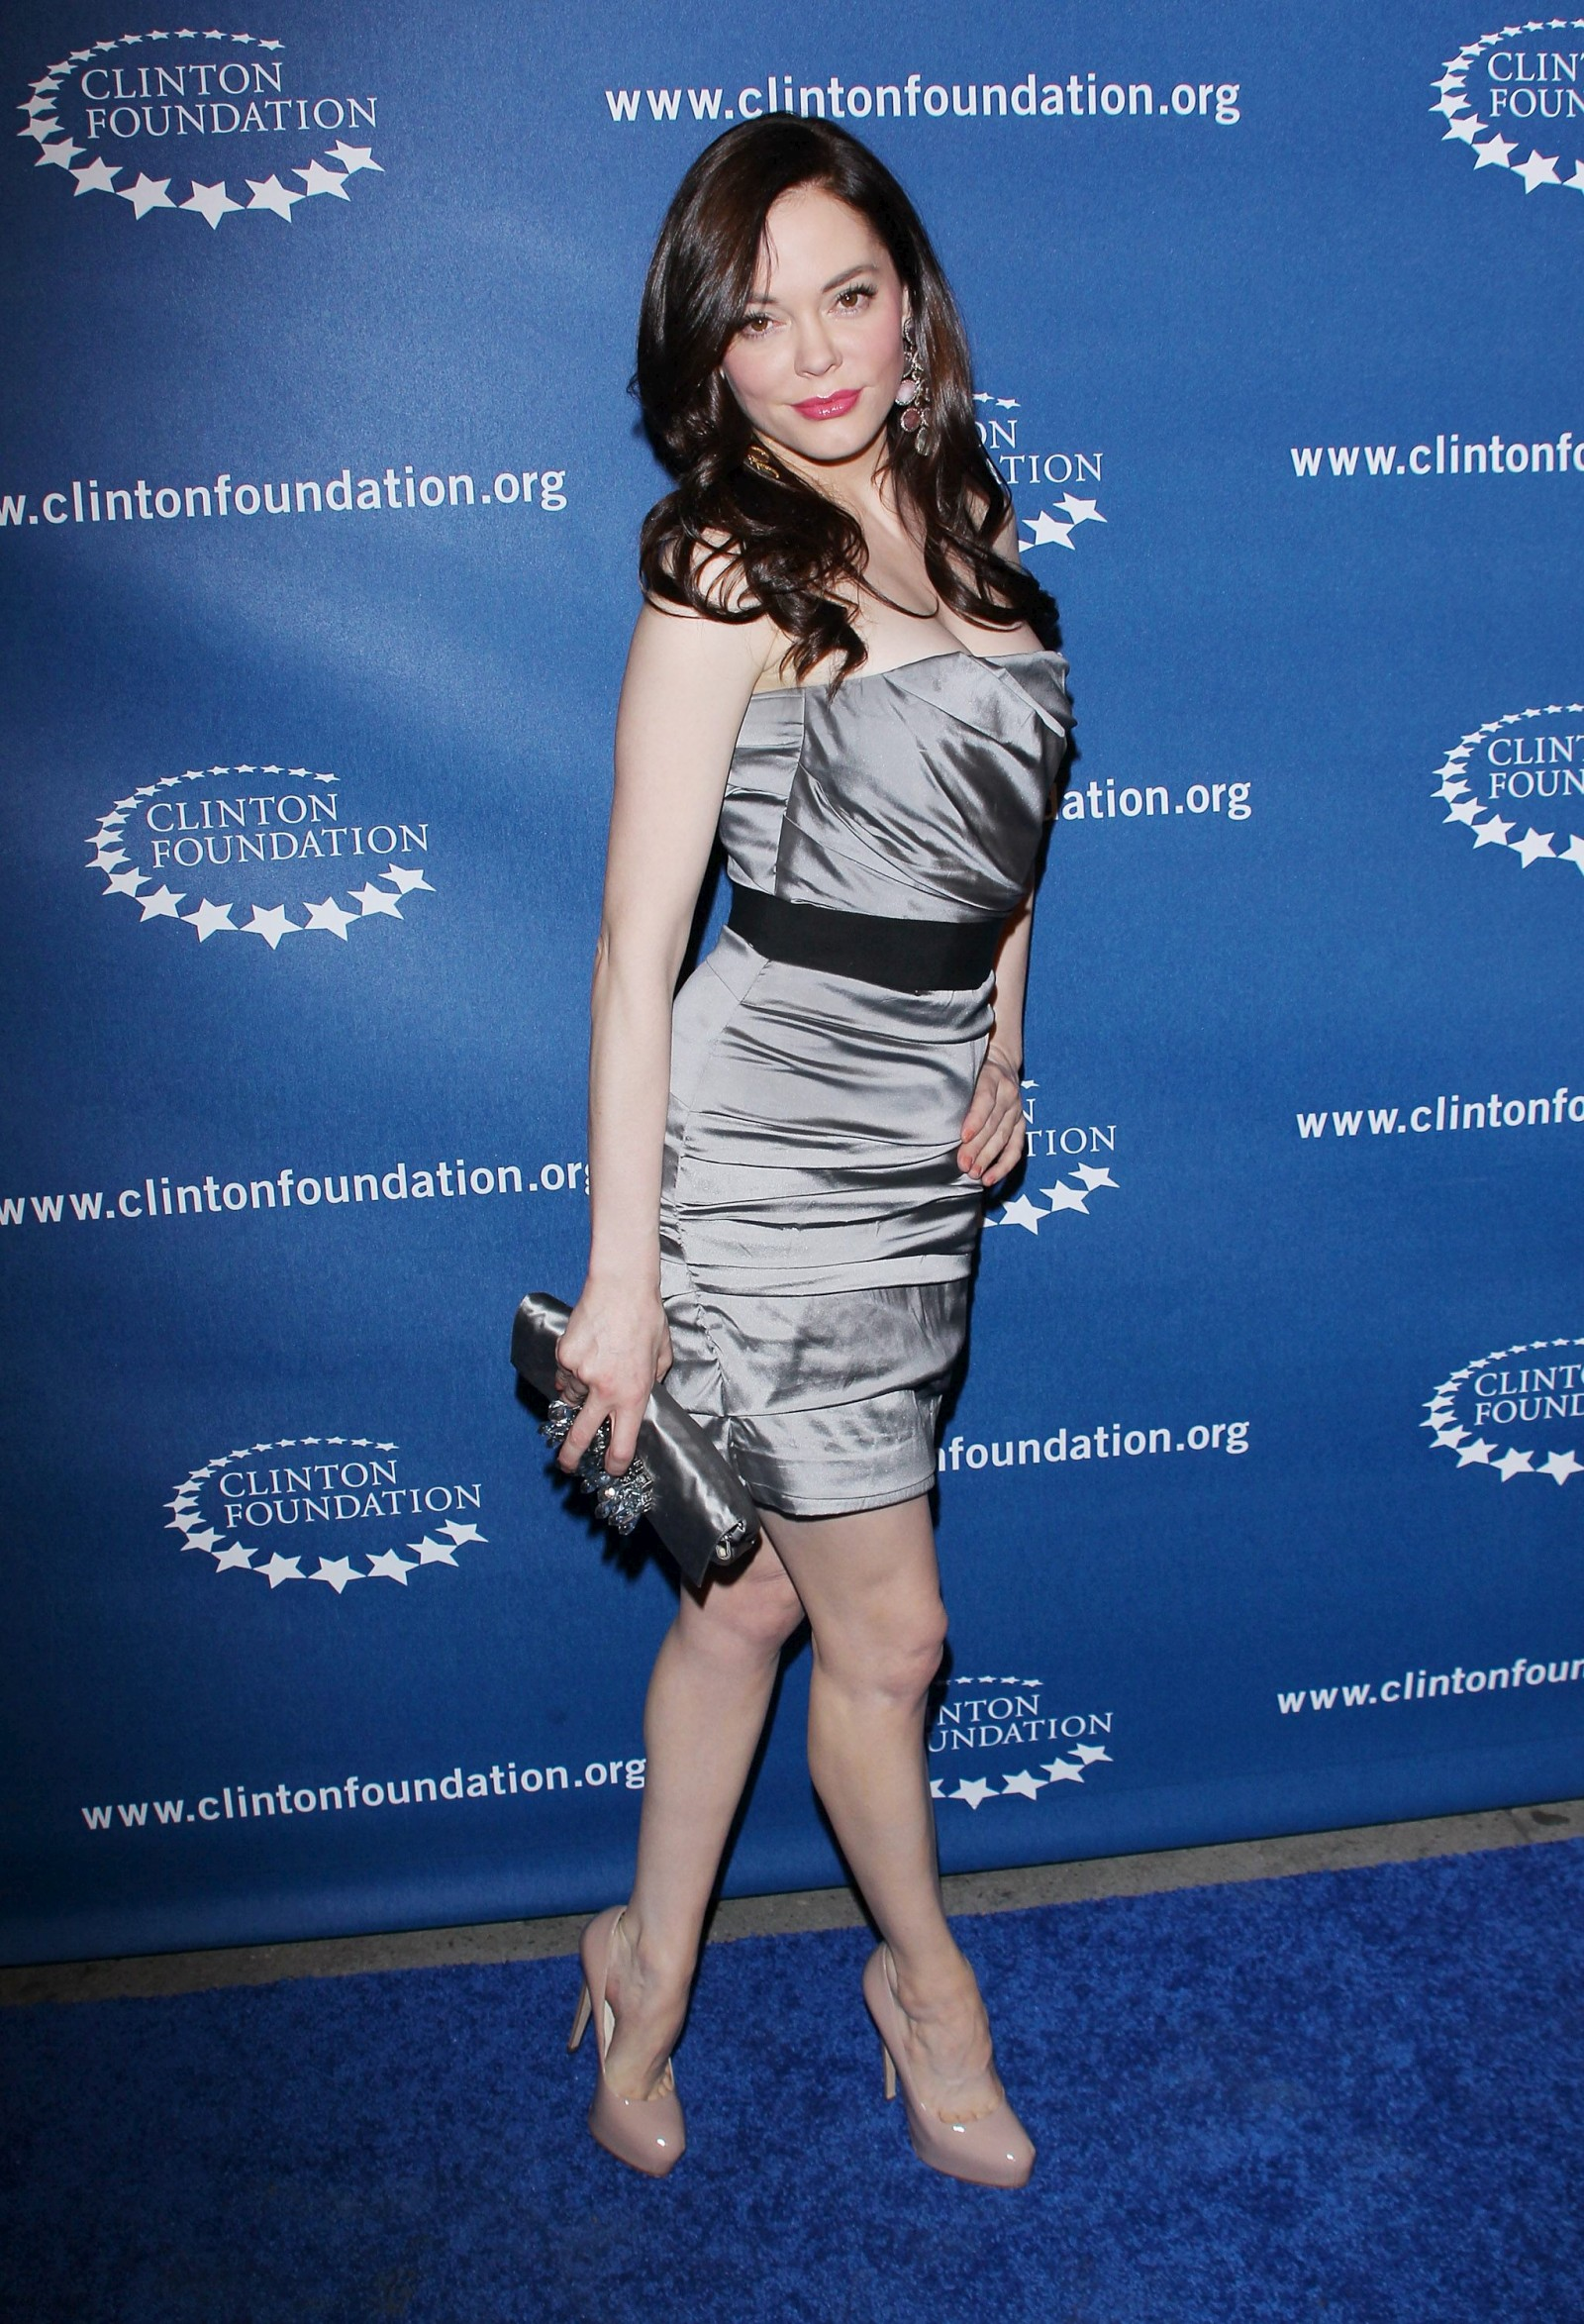 751848836_Rose_McGowan_Millennium_Network_Event_in_Hollywood_March_17_2011_08_122_238lo.jpg